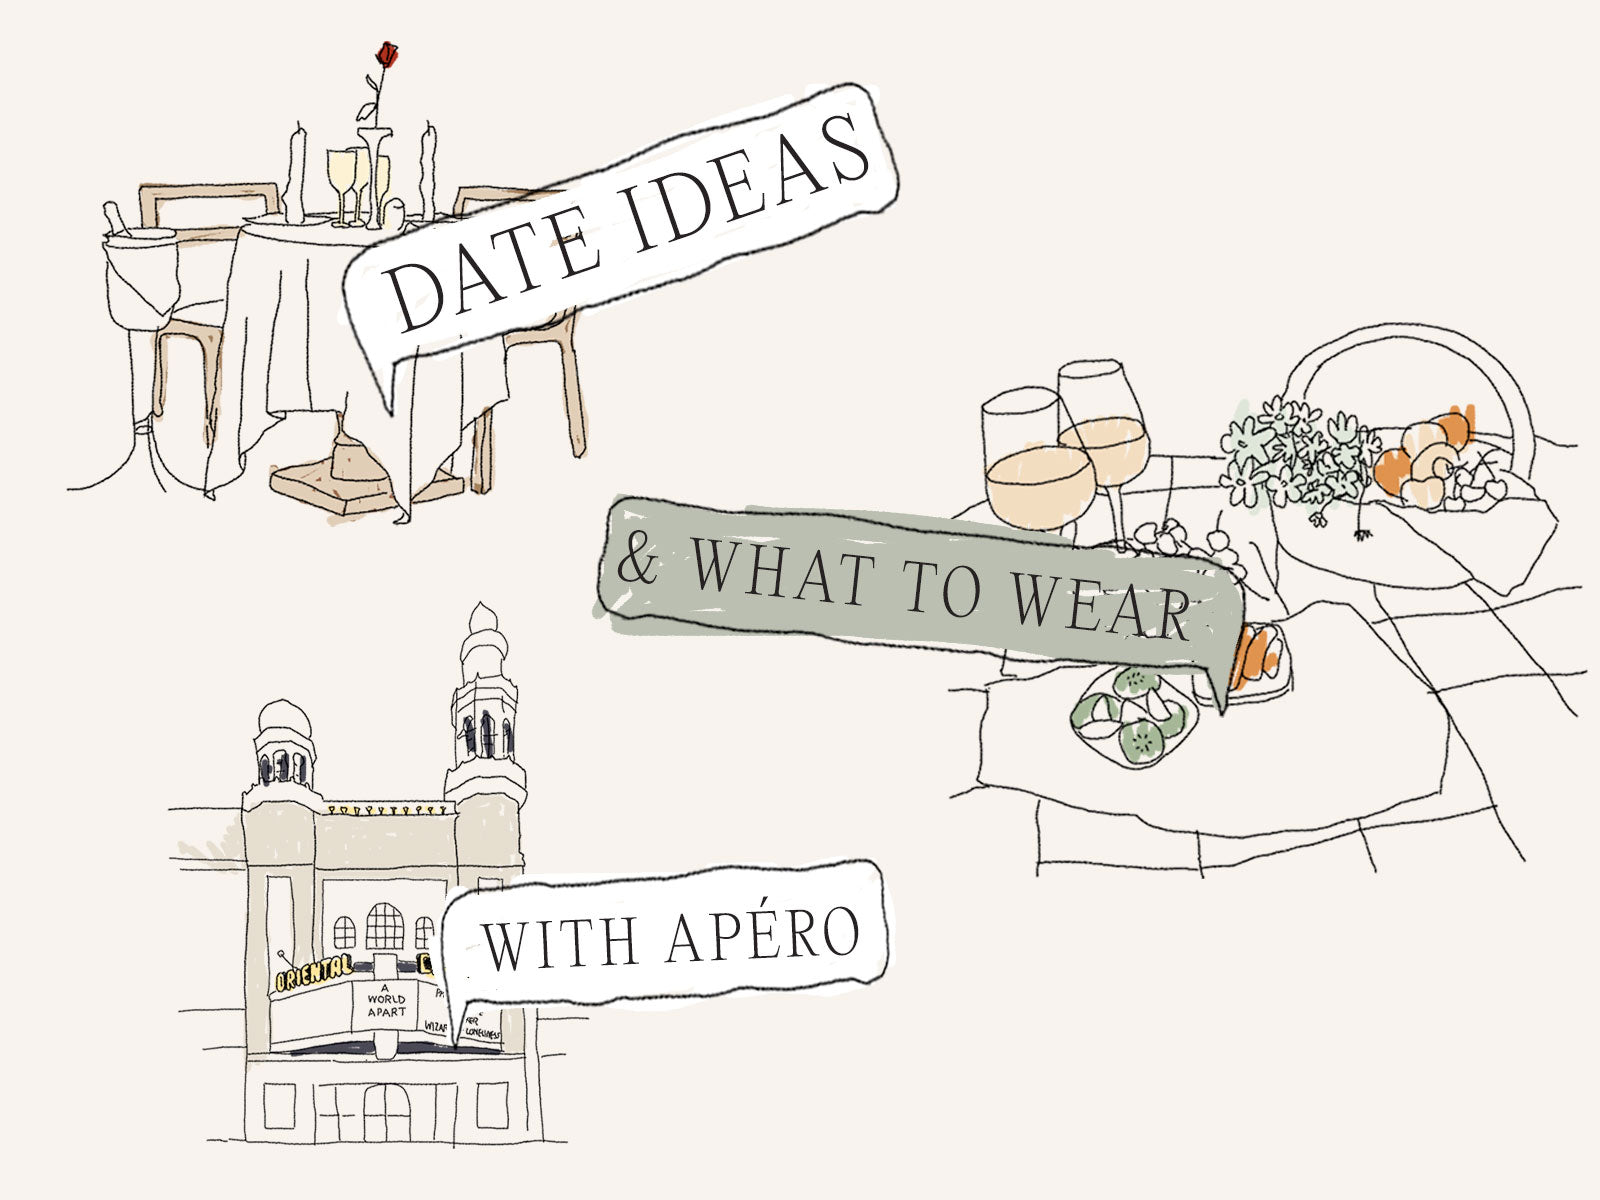 Date Ideas and What to Wear with Apero